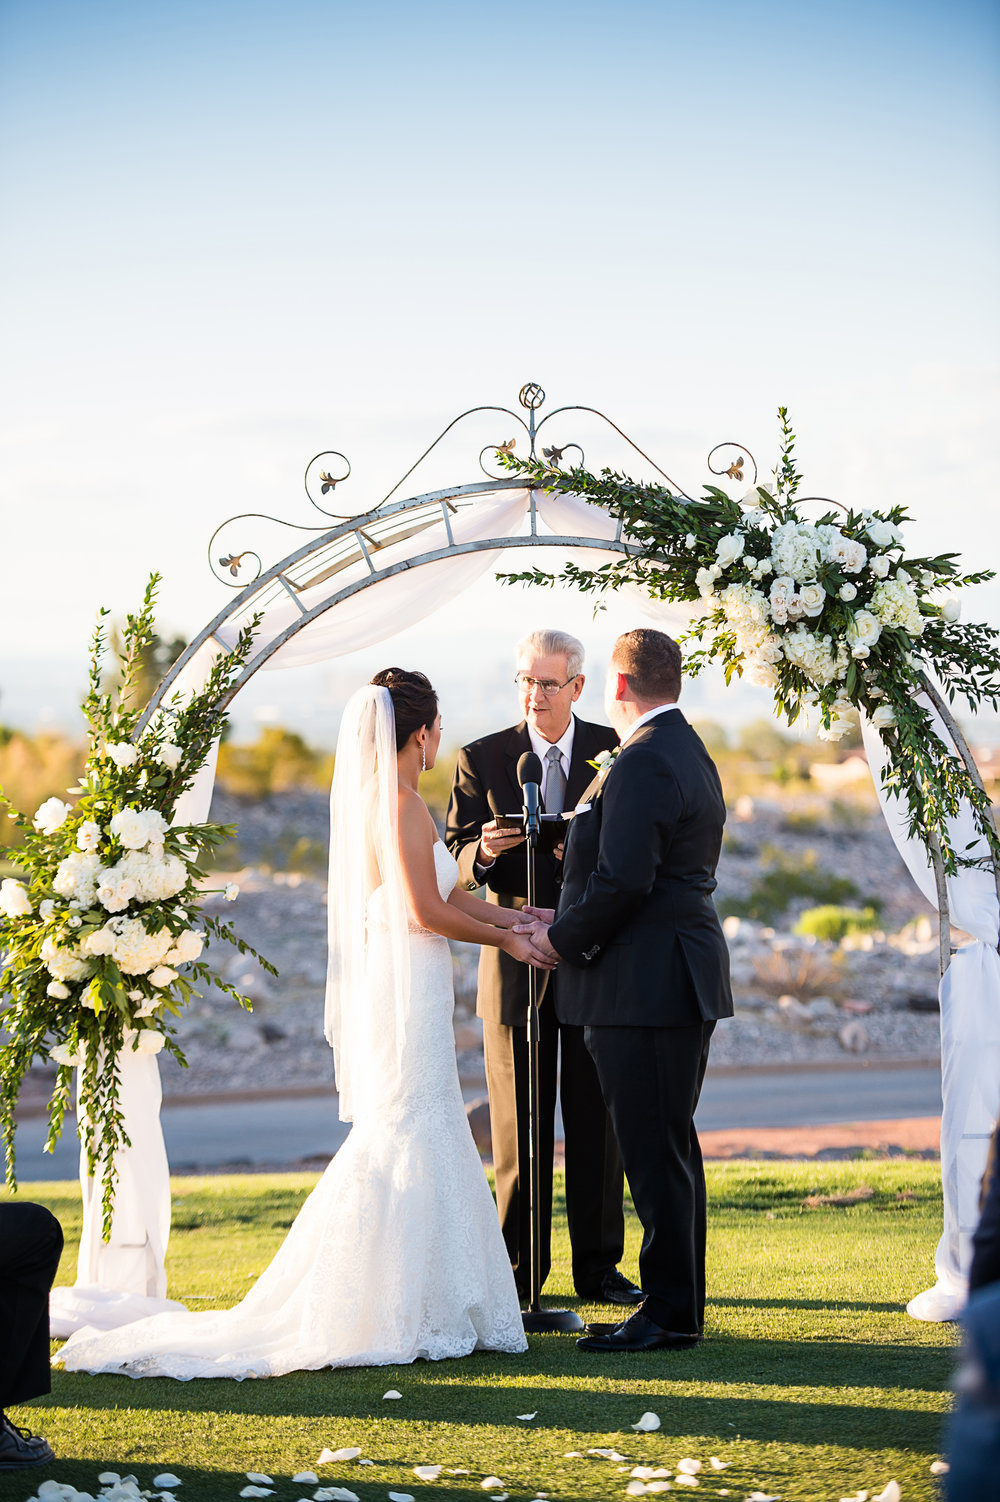 Wedding Vows on the golf course. Las Vegas Wedding Planner Andrea Eppolito.  Photo by Studio JK.